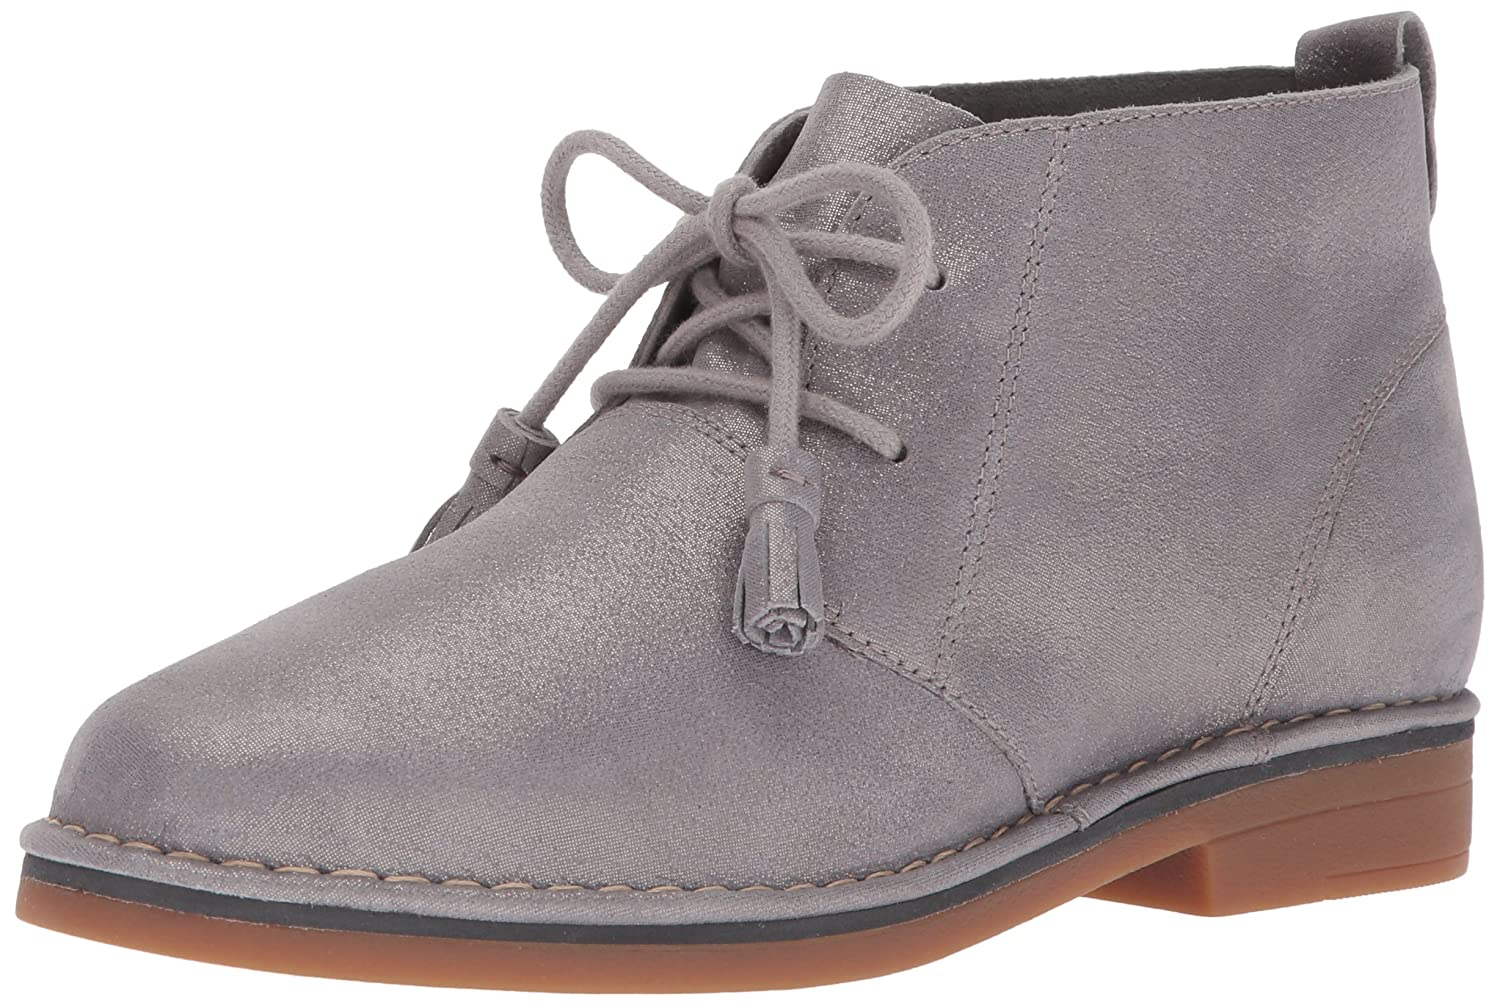 Hush Puppies Women's Cyra Catelyn Ankle Bootie B01MYFLRBS 11 B(M) US|Grey Shimmer